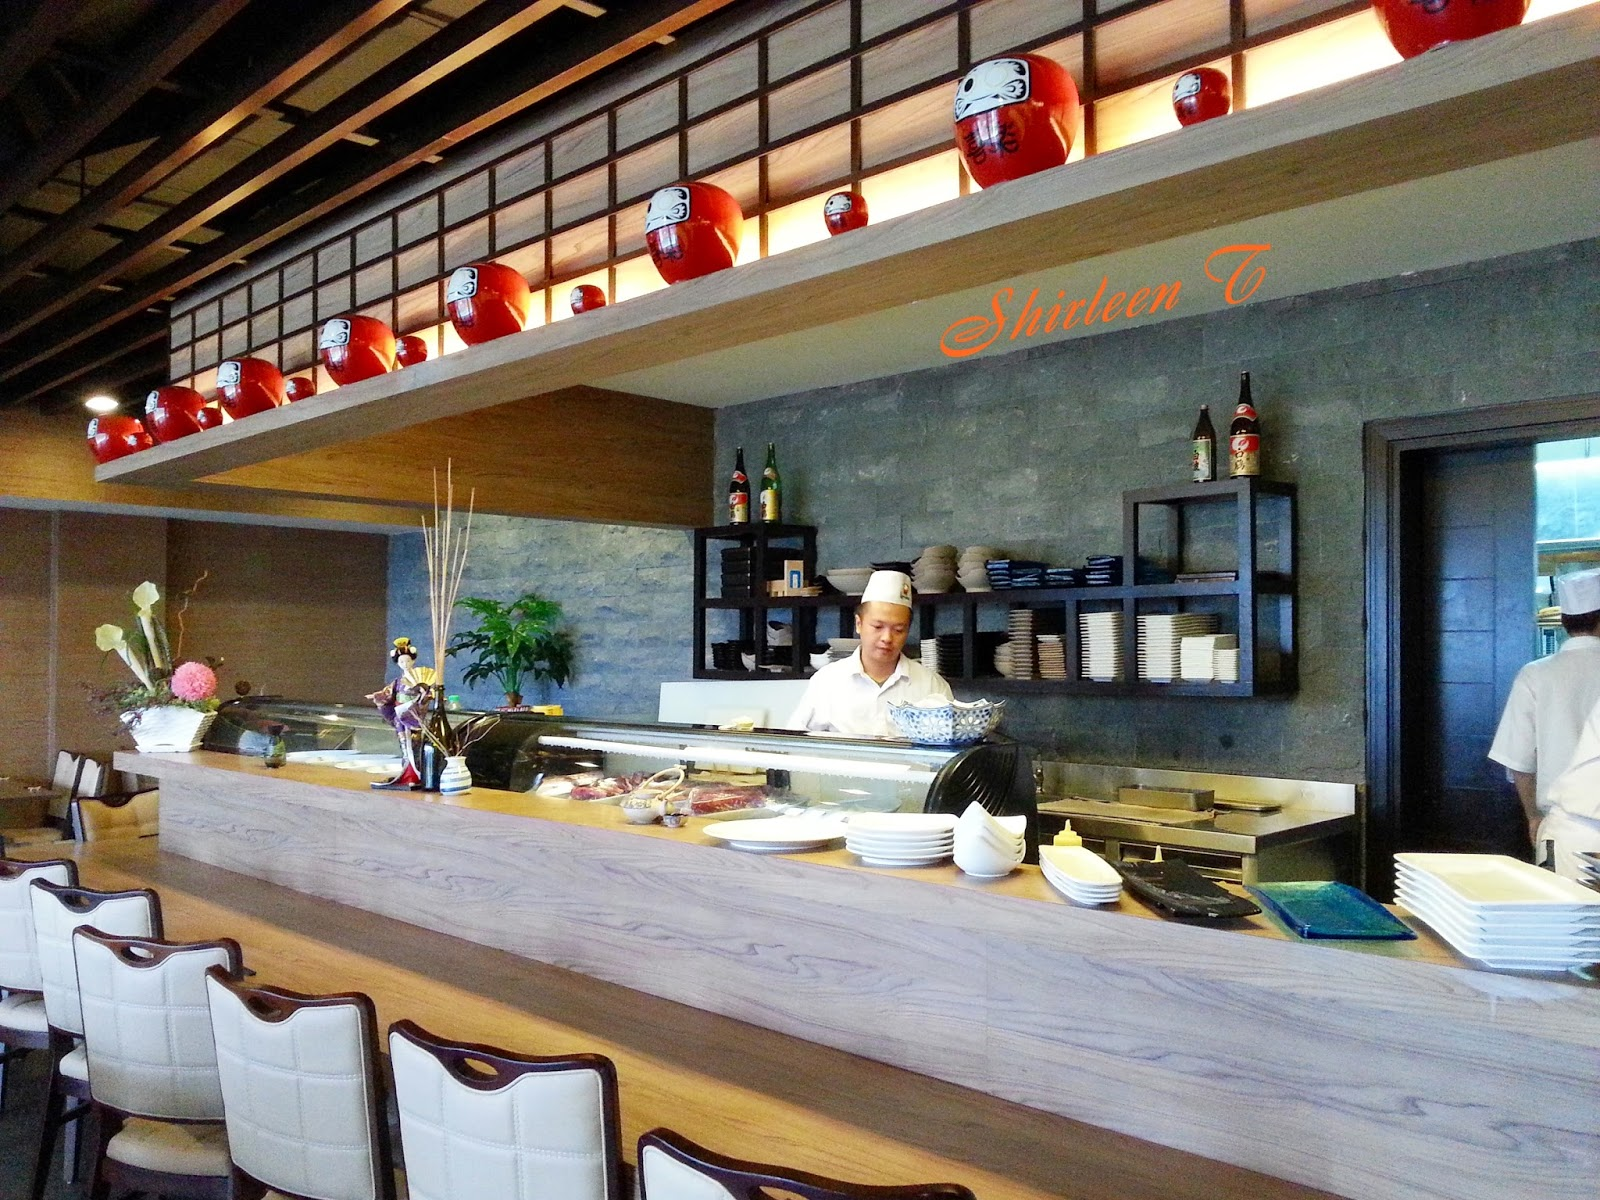 essay japanese restaurant The 31 best sushi restaurants in america  masa miyake has spent more than a decade presiding over the premier japanese restaurant in the east coast's favorite portland, establishing it as a.